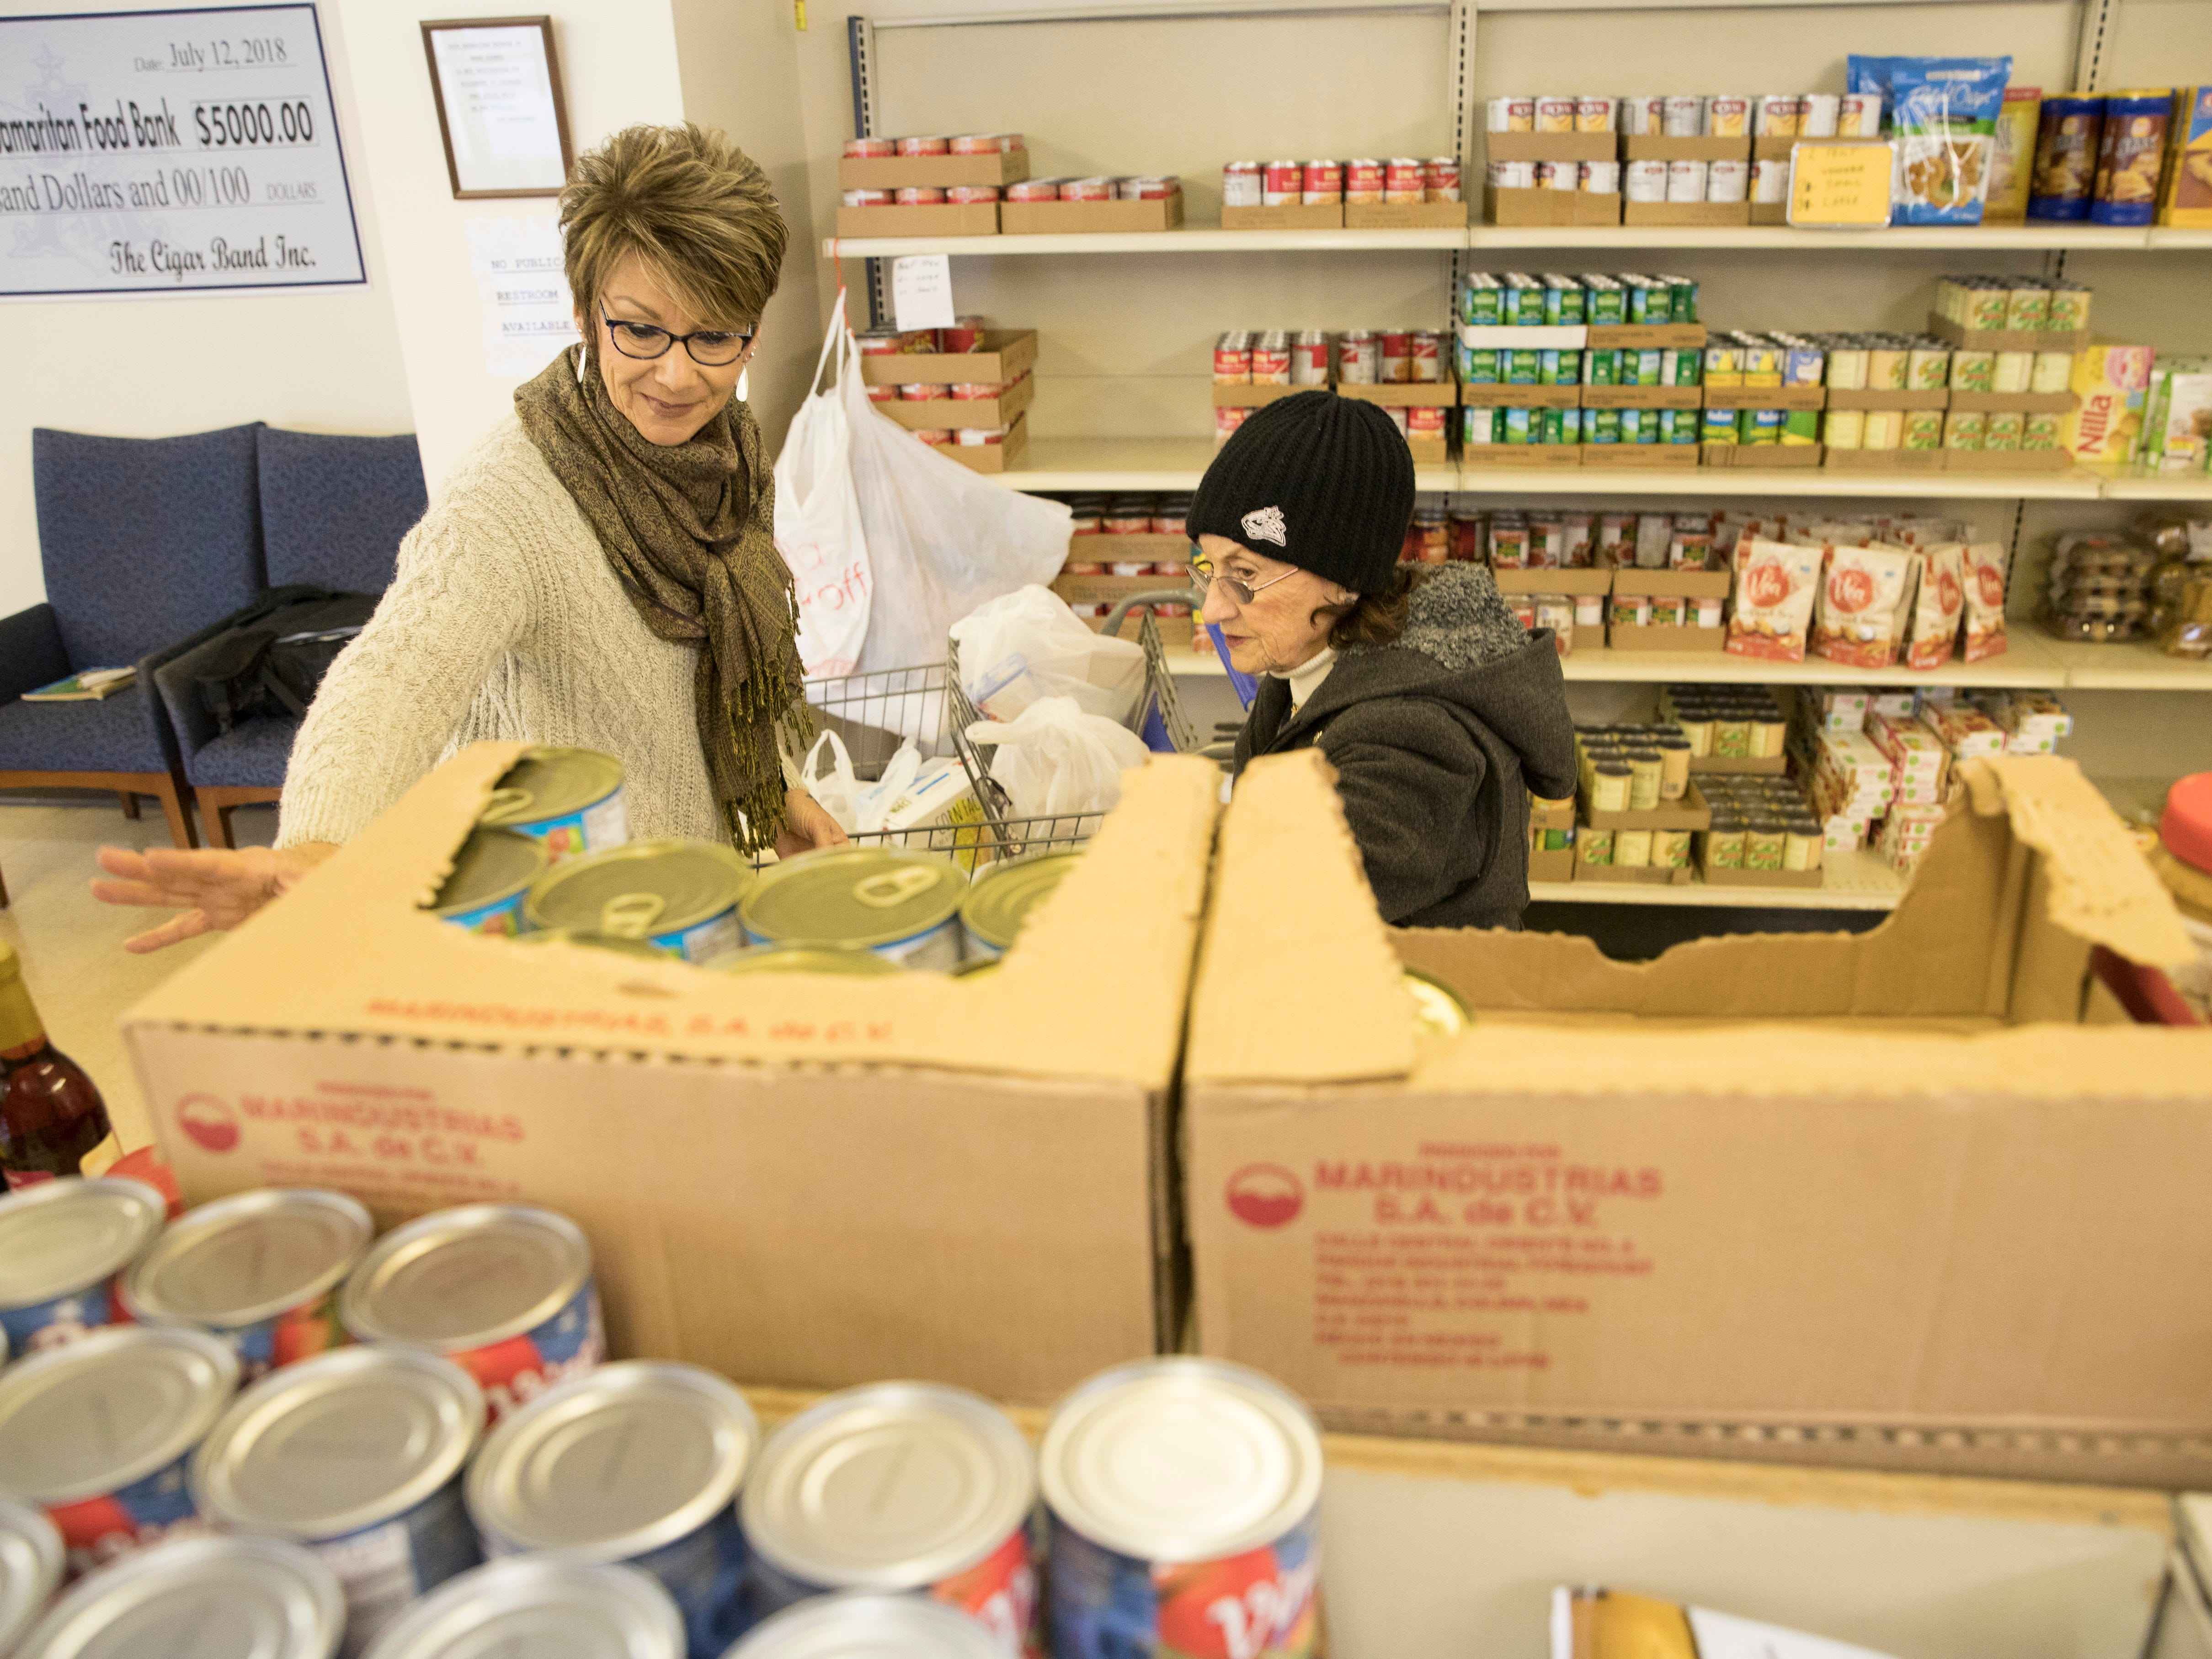 Edie Adkins finishes getting groceries at the Good Samaritan Food Pantry Monday in Chillicothe.